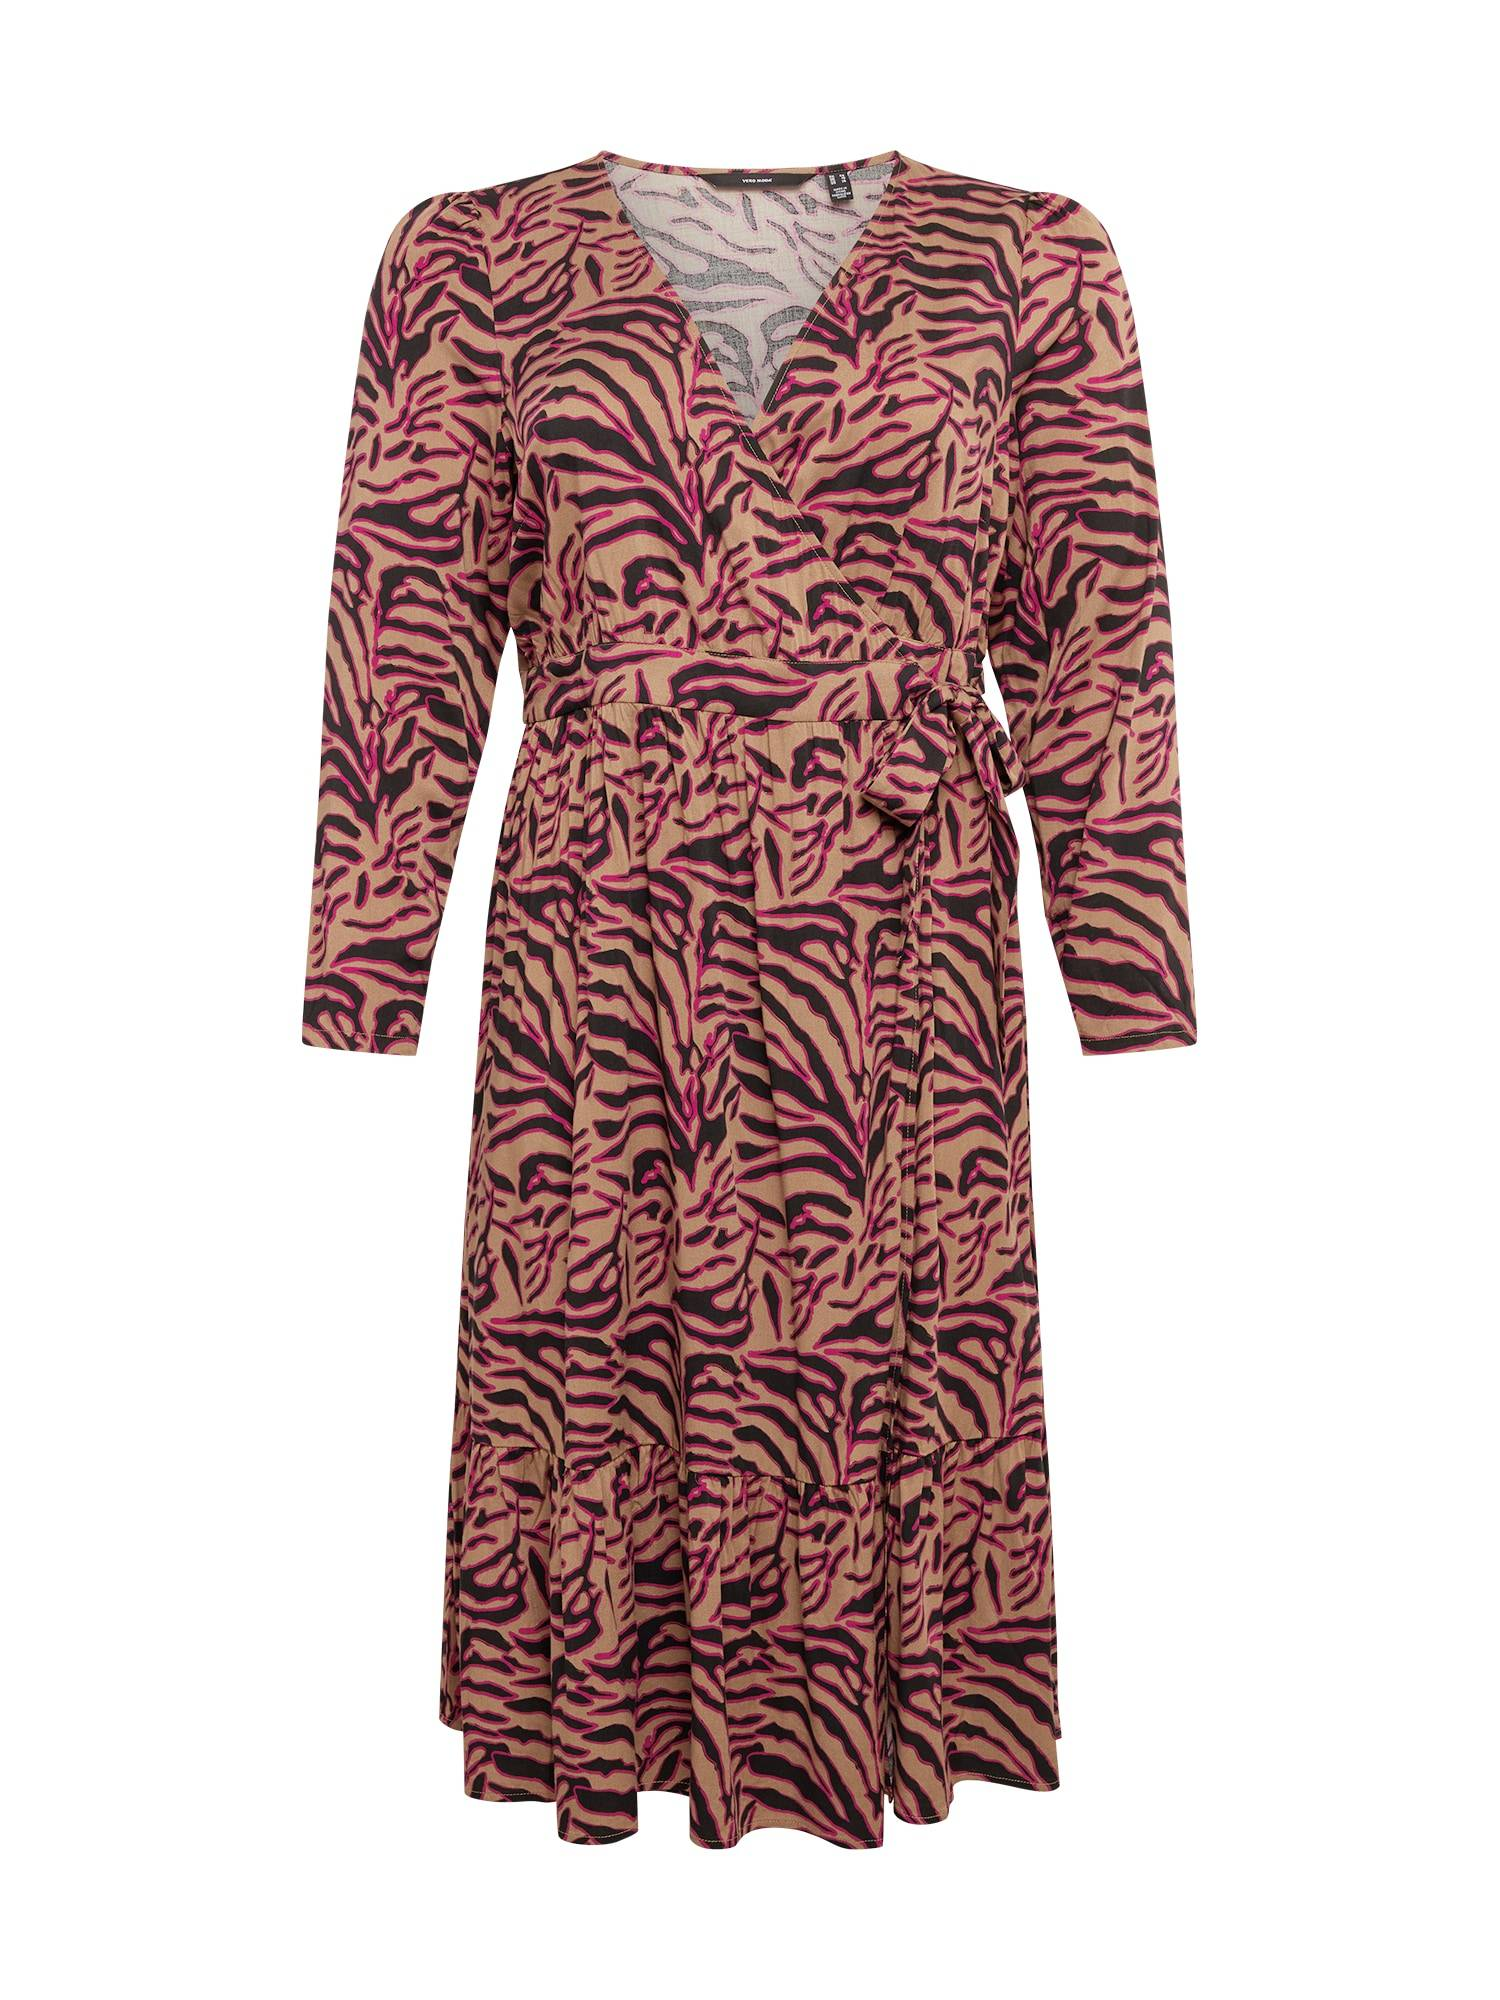 Vero Moda Curve Robe  - Rose - Taille: 54 - female